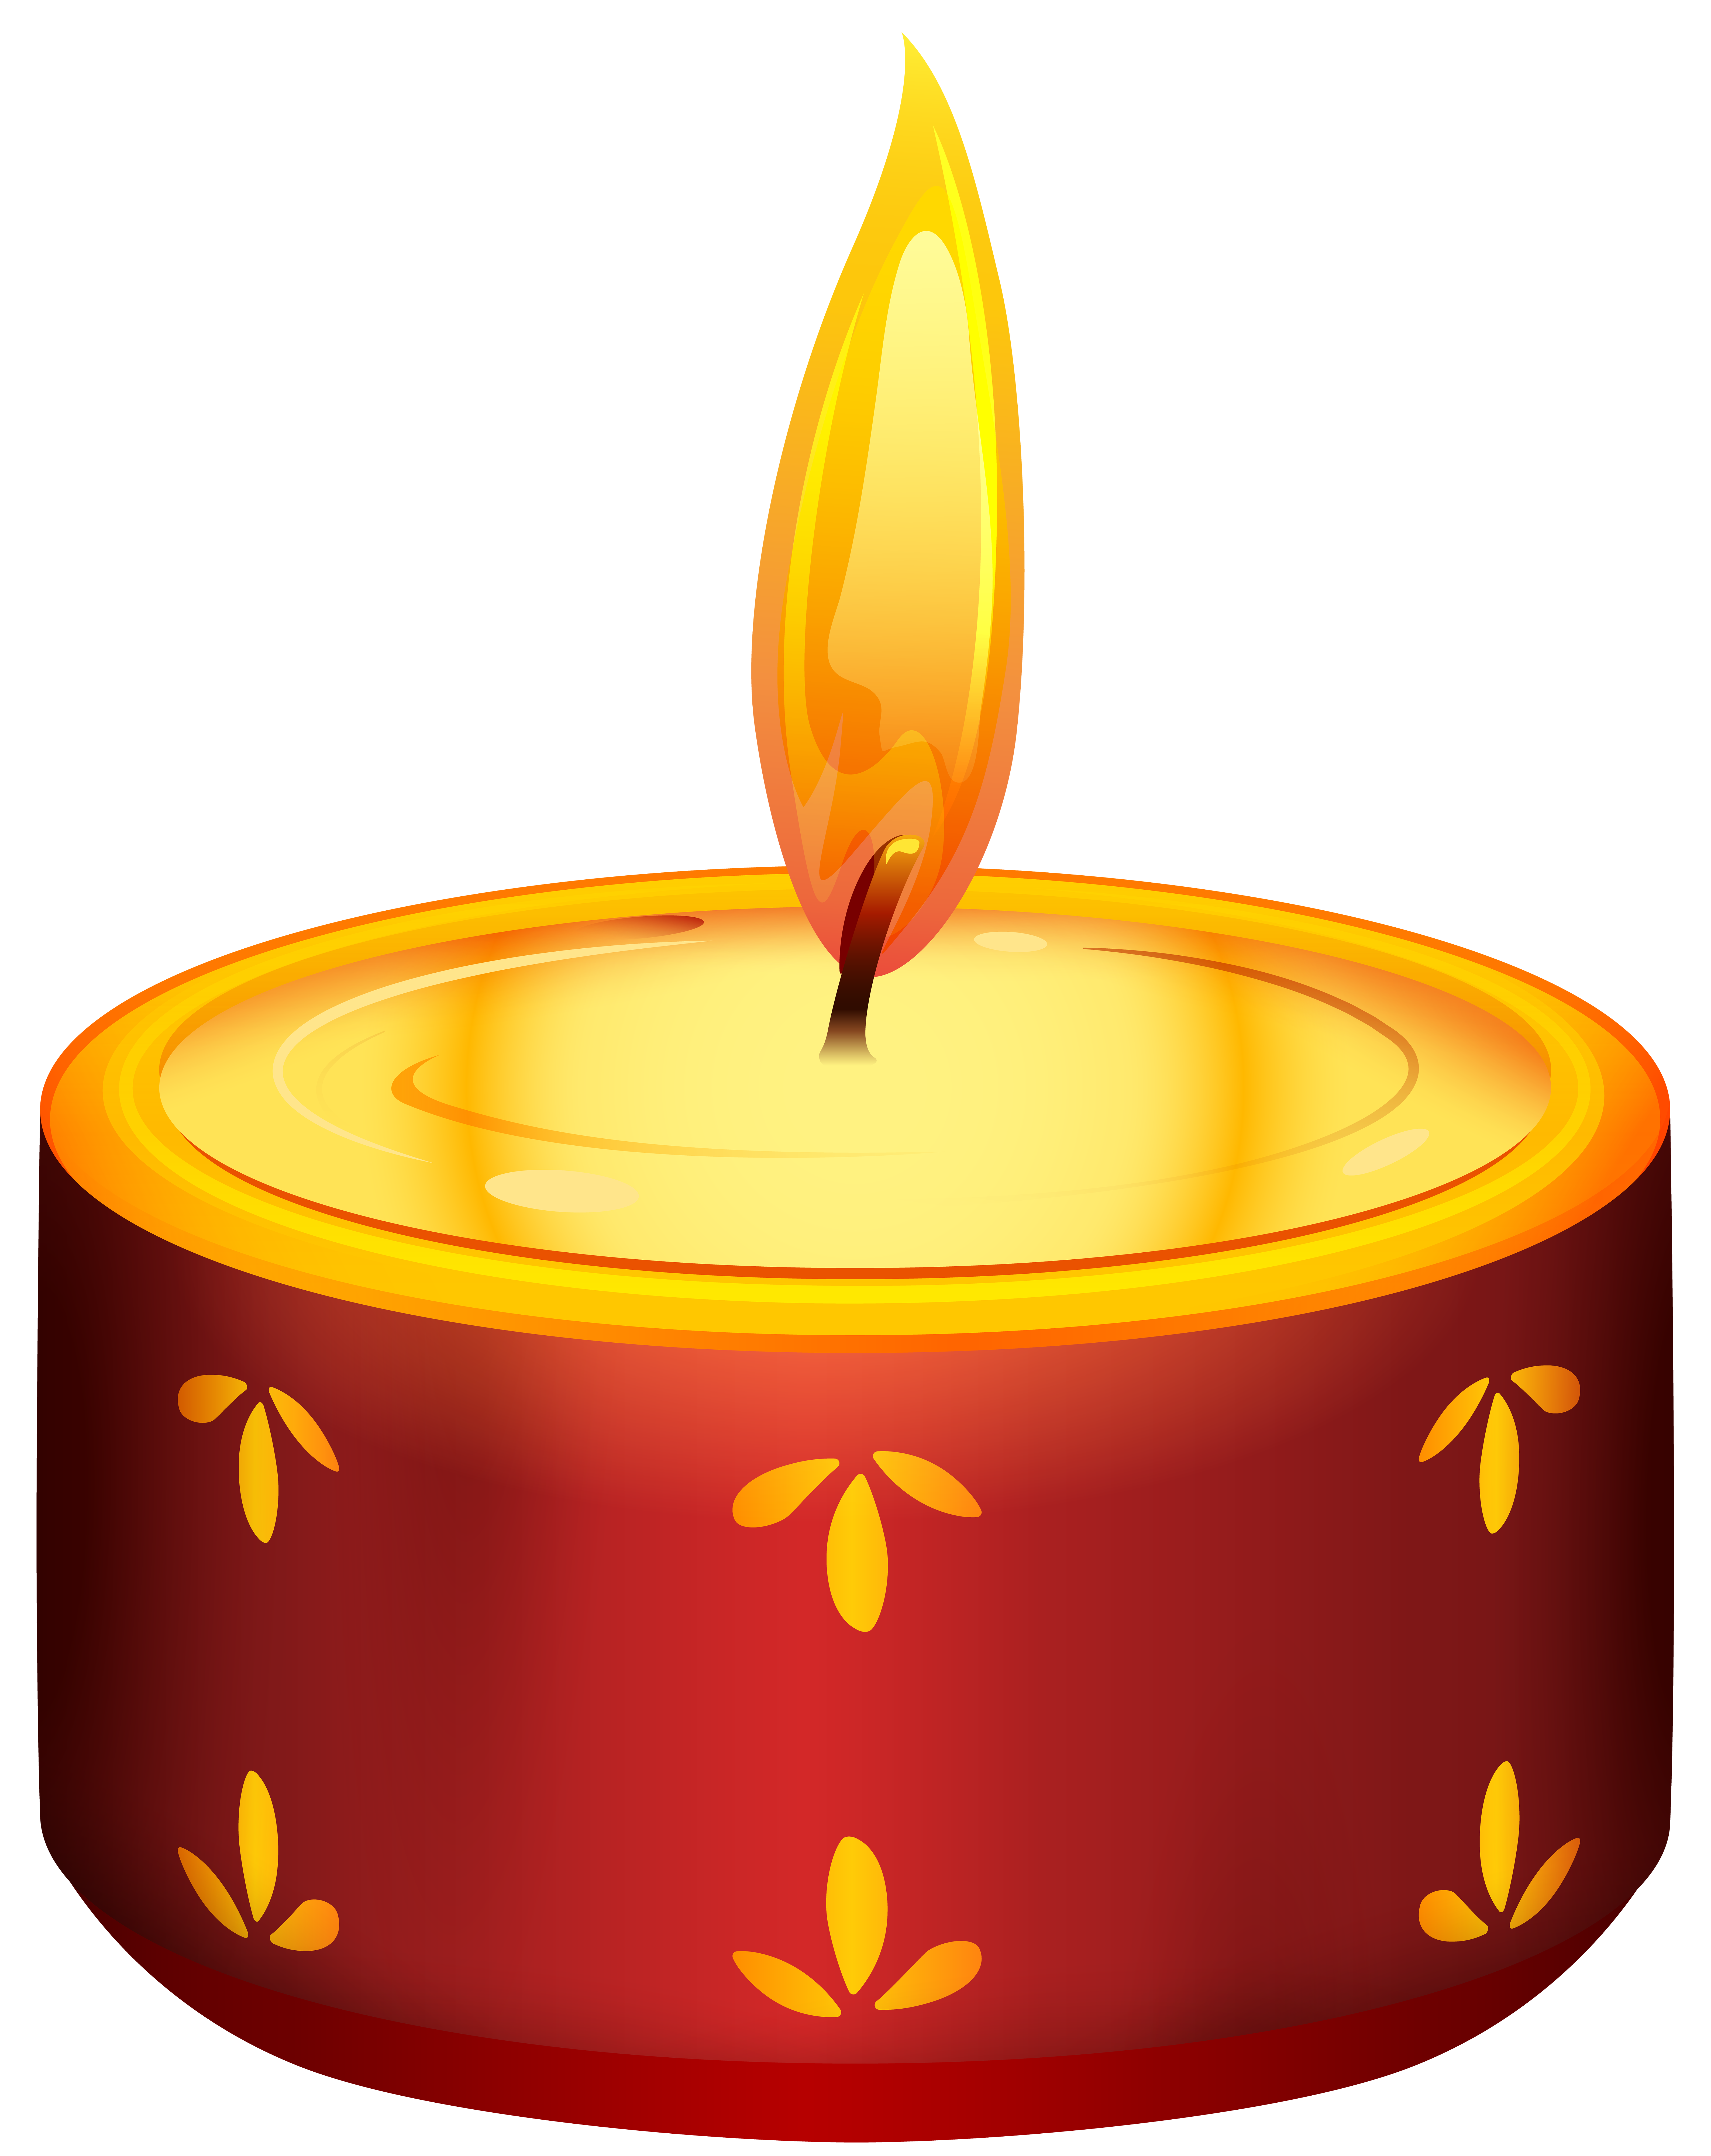 Clipart flames oil. Diwali red candle transparent